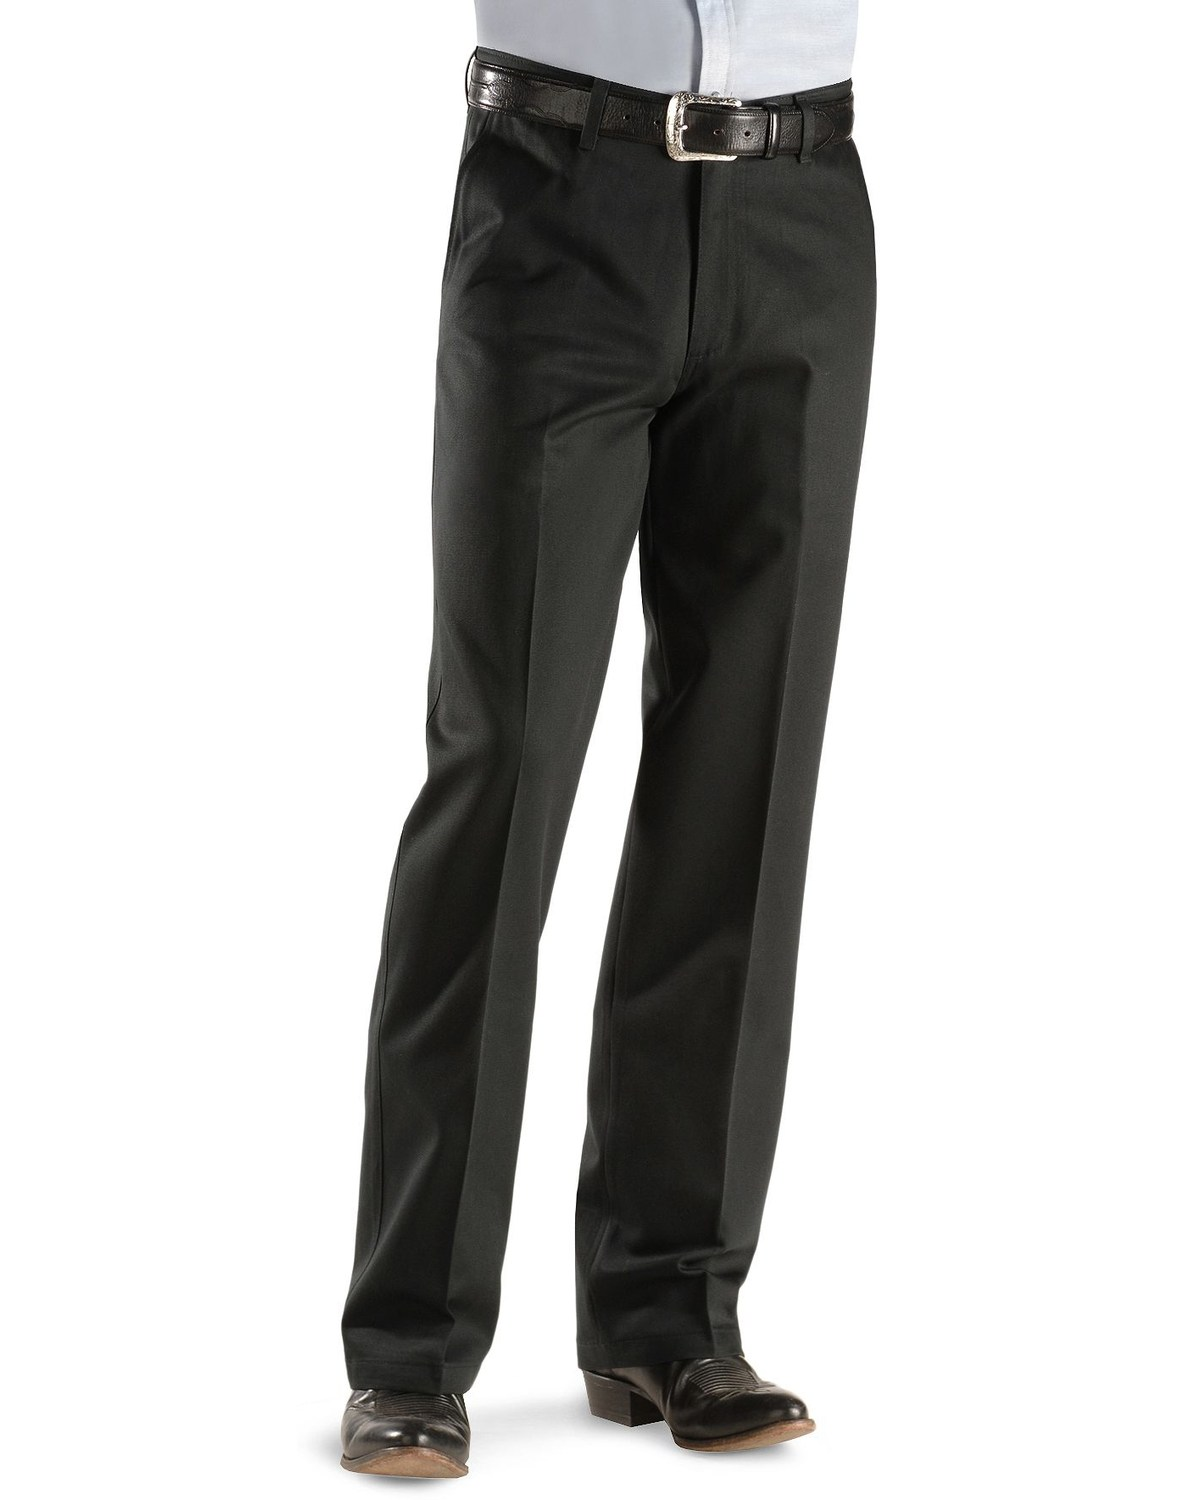 e645e8fa Wrangler Men's Riata Flat Front Relaxed Fit Pants